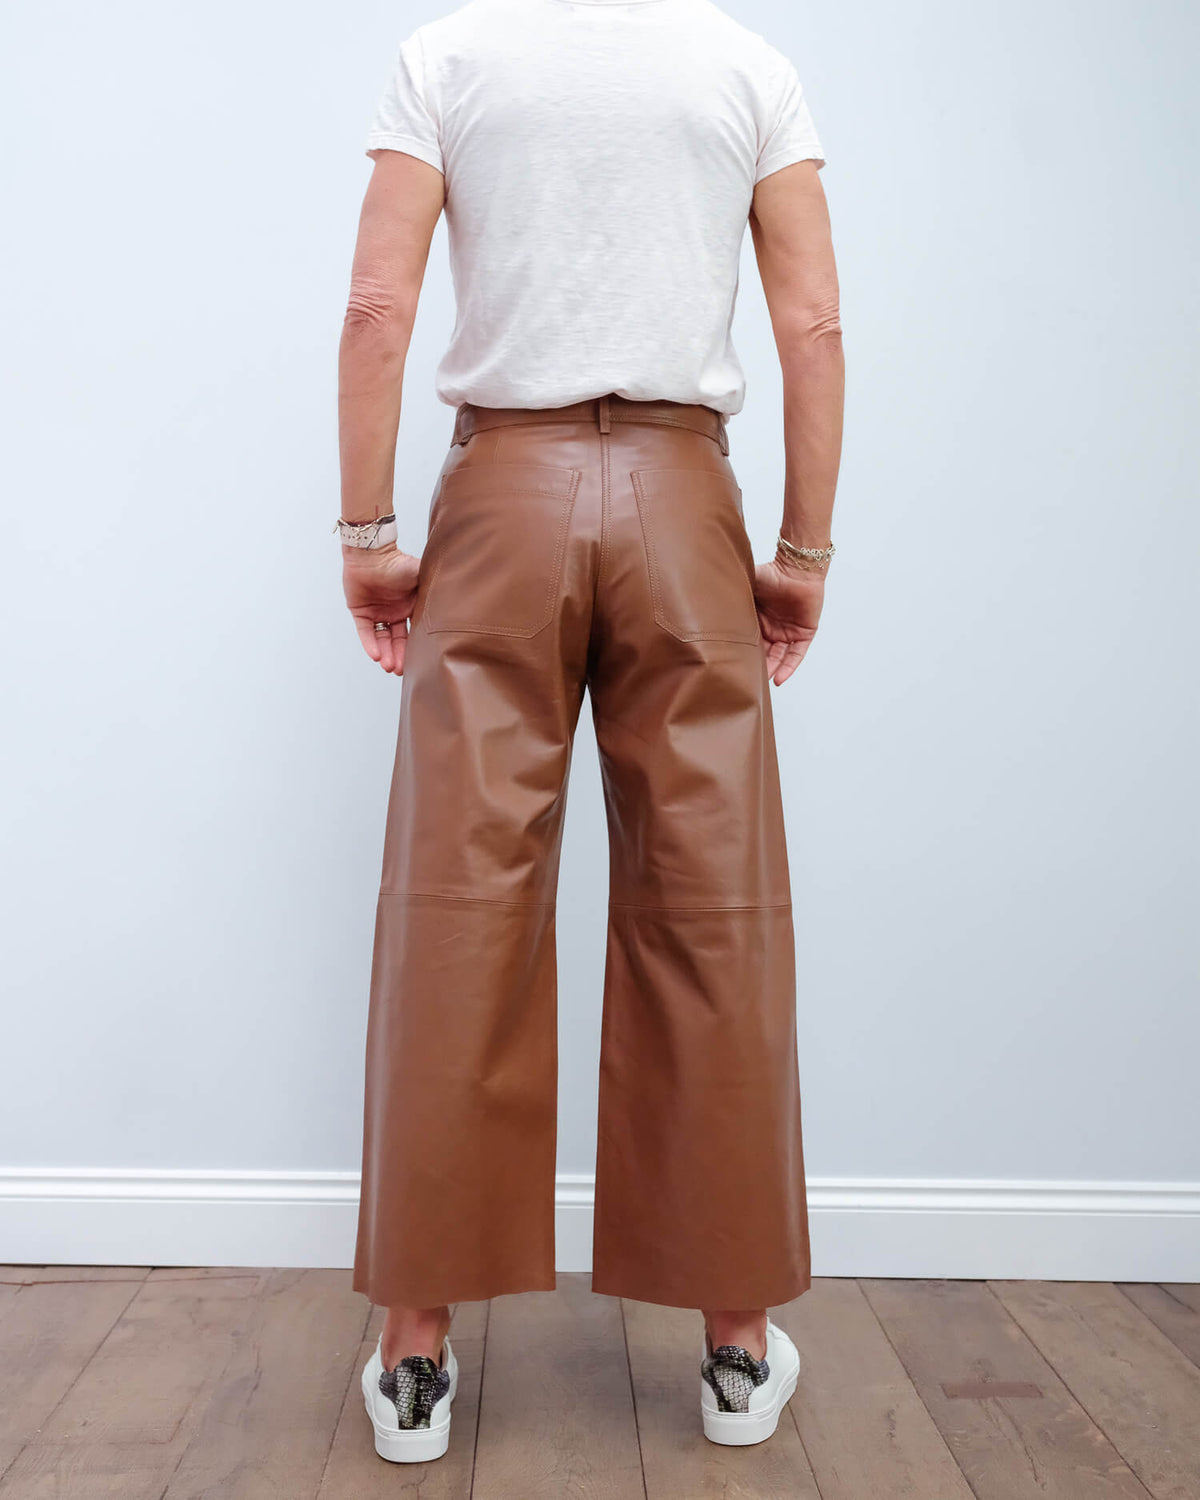 MM Atalia leather trouser in brown